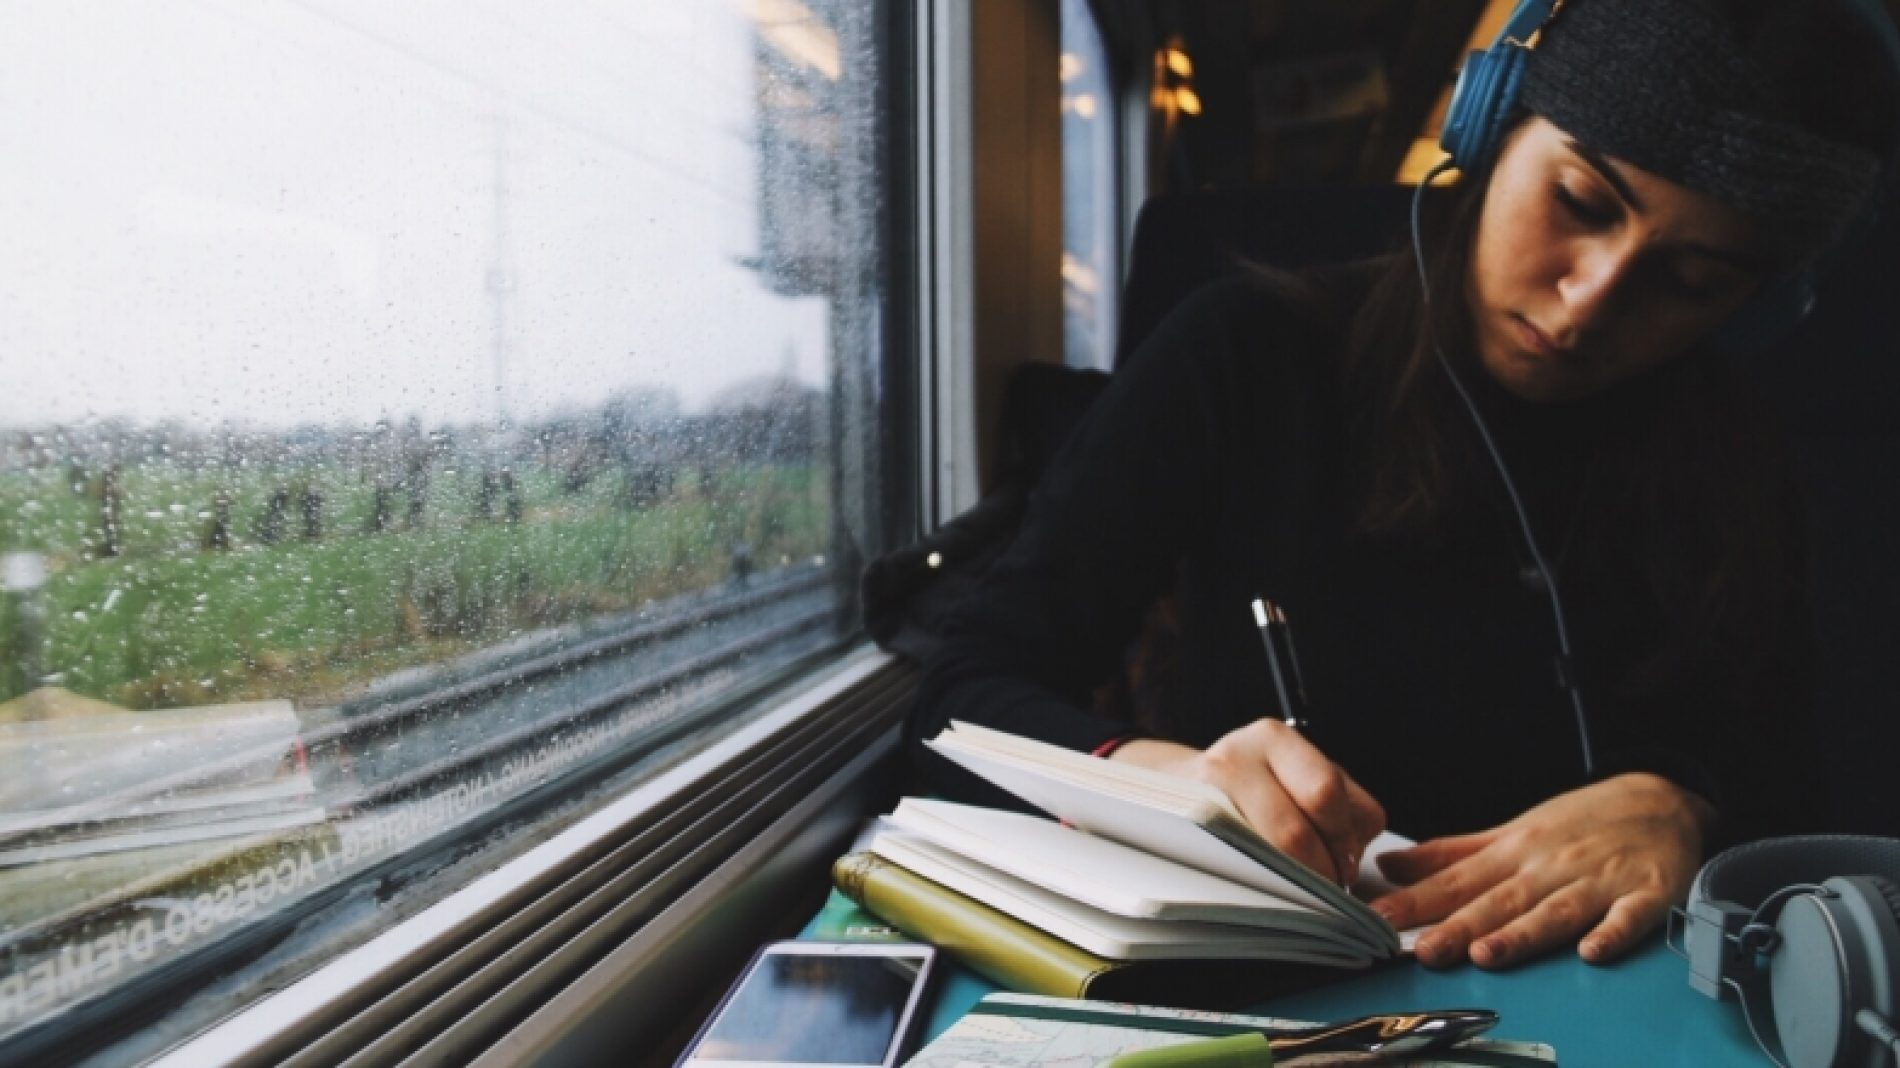 Young-person-studying-beside-a-window-LCPrgg